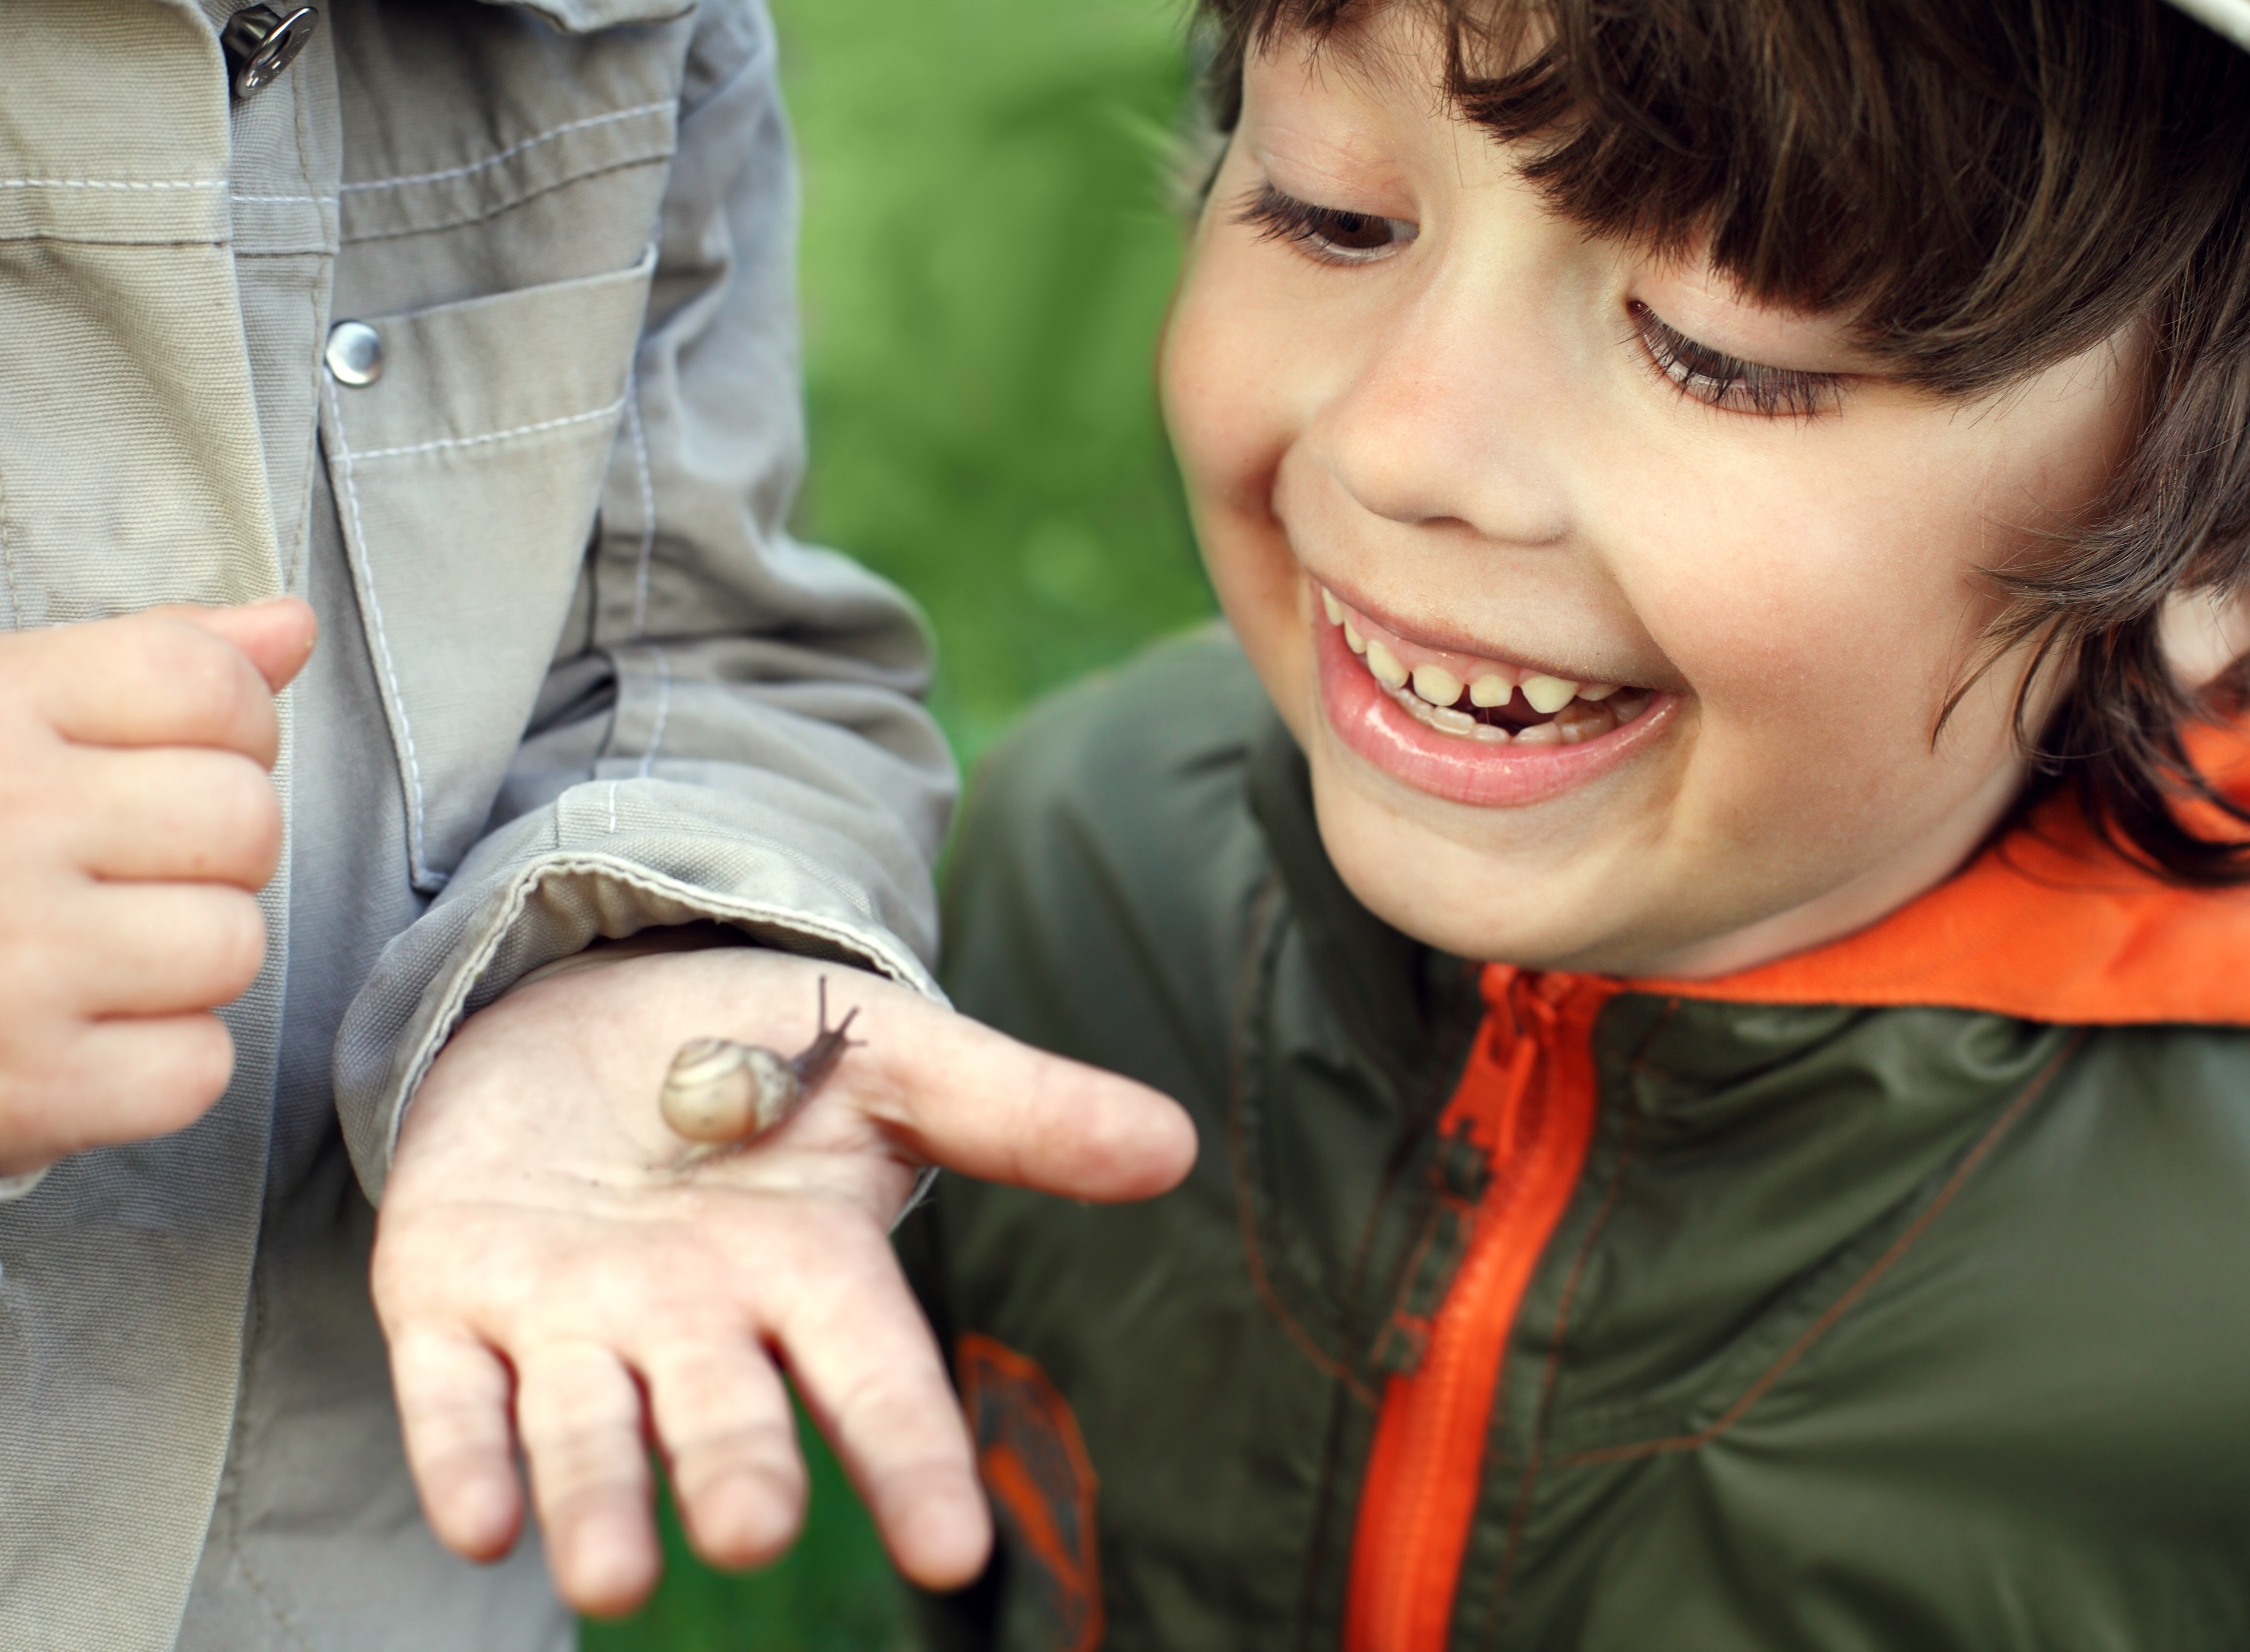 bug, nature, child, boy, snail, insect